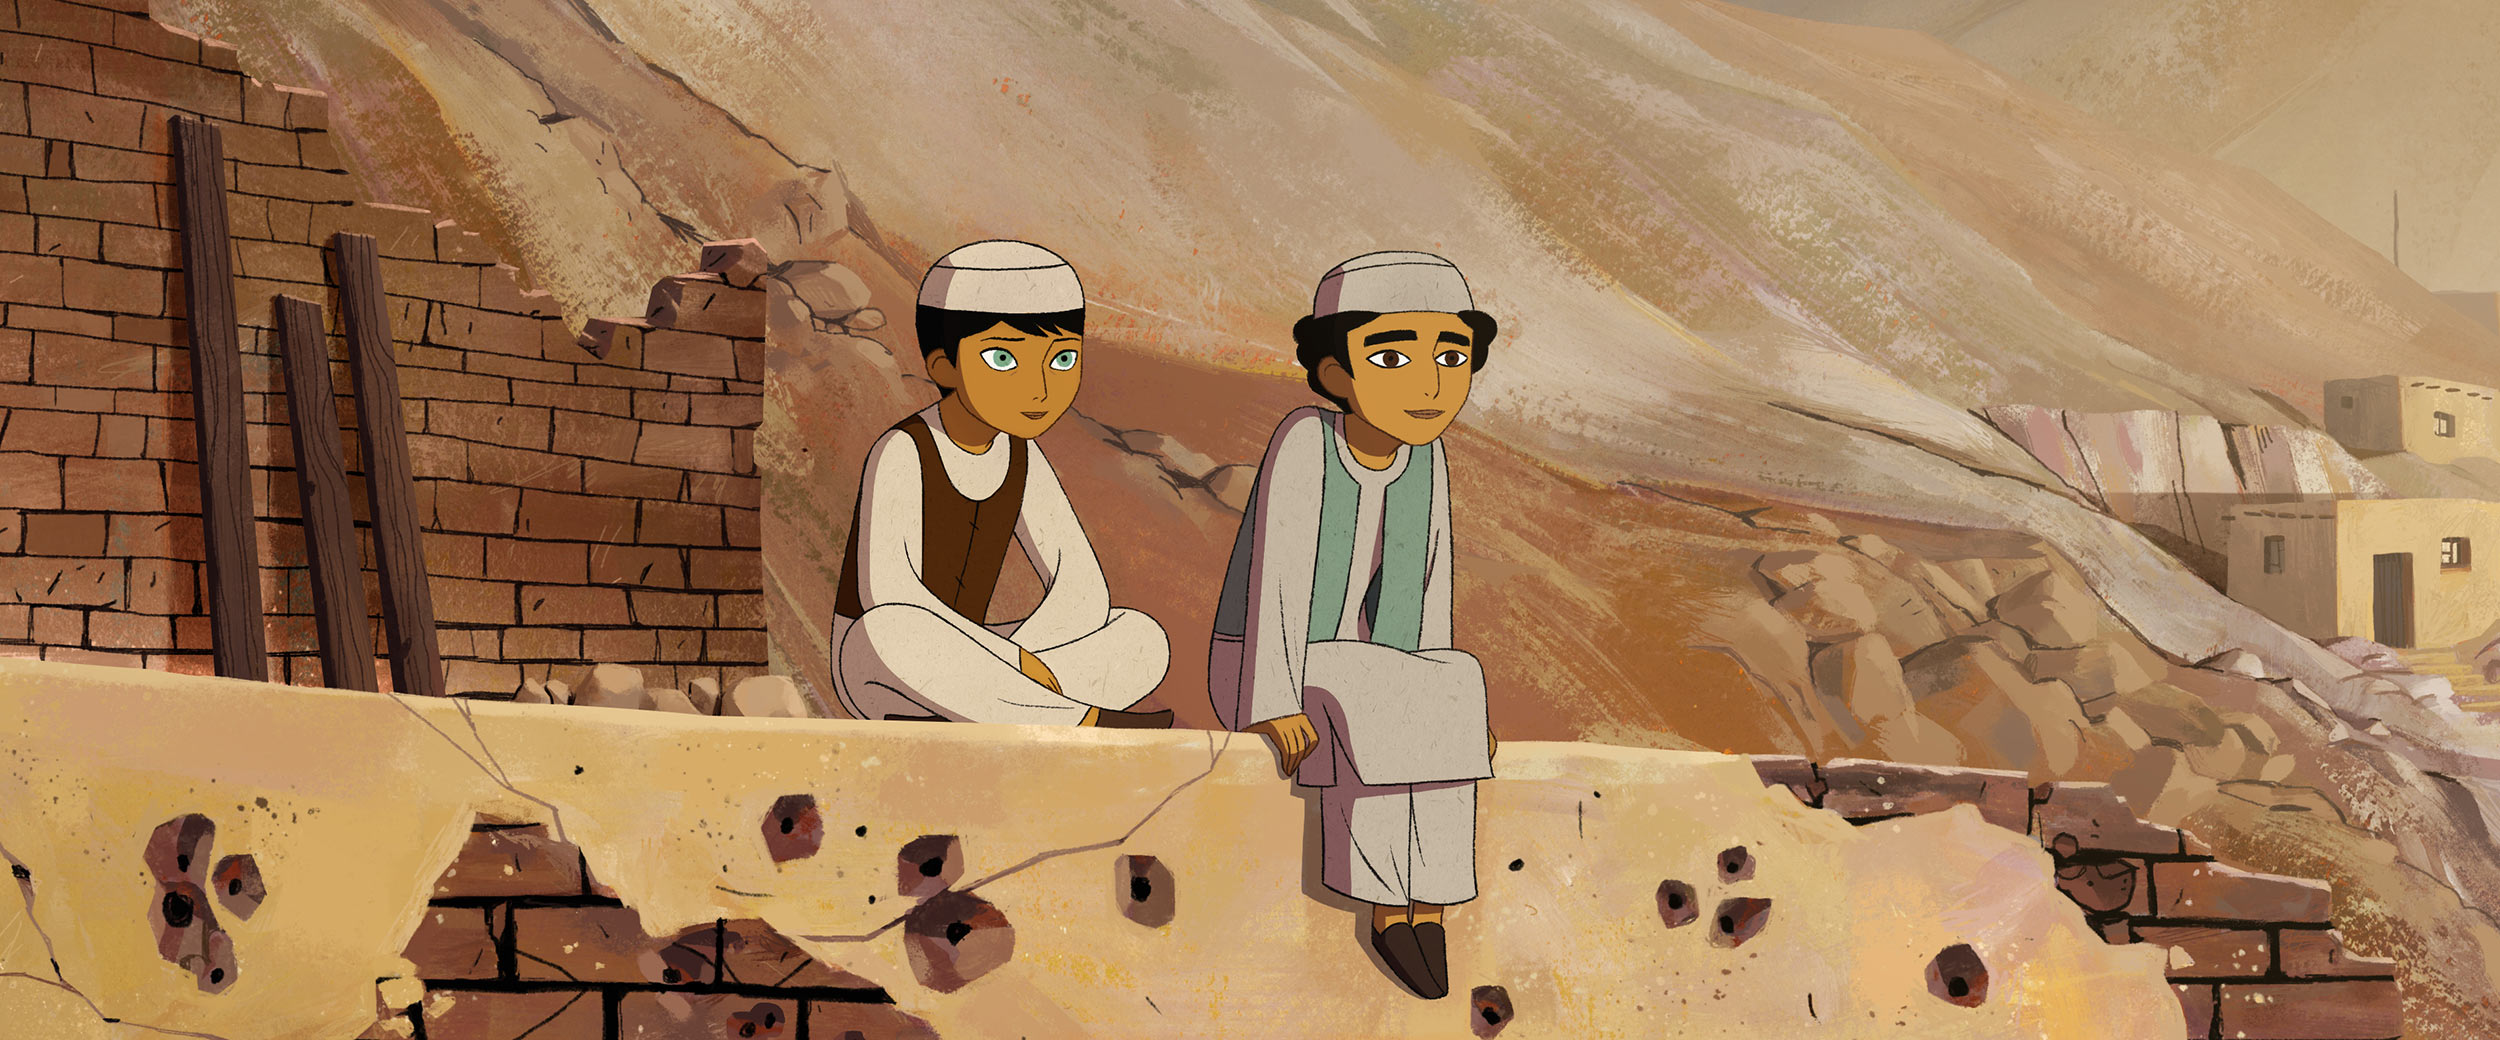 https://i1.wp.com/teaser-trailer.com/wp-content/uploads/The-Breadwinner-movie-2.jpg?ssl=1